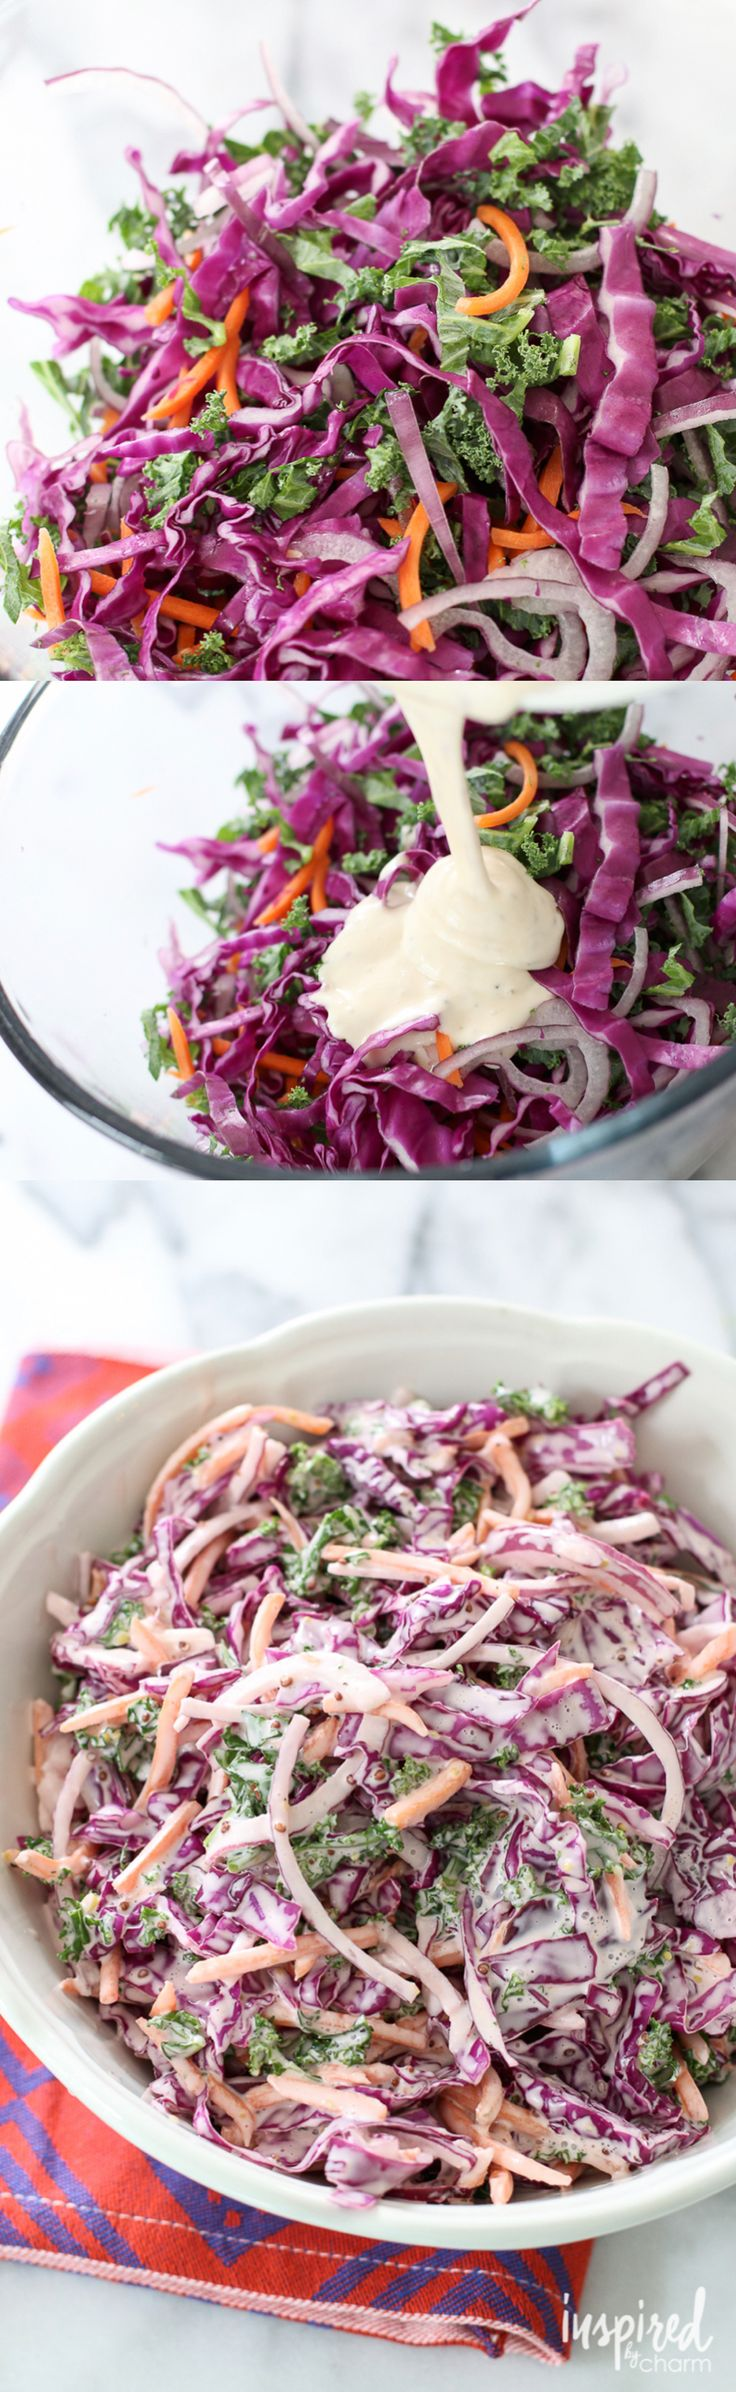 Red Cabbage Coleslaw   Hands down one of the best coleslaw recipes. Love the addition of carrots and kale. Perfection!